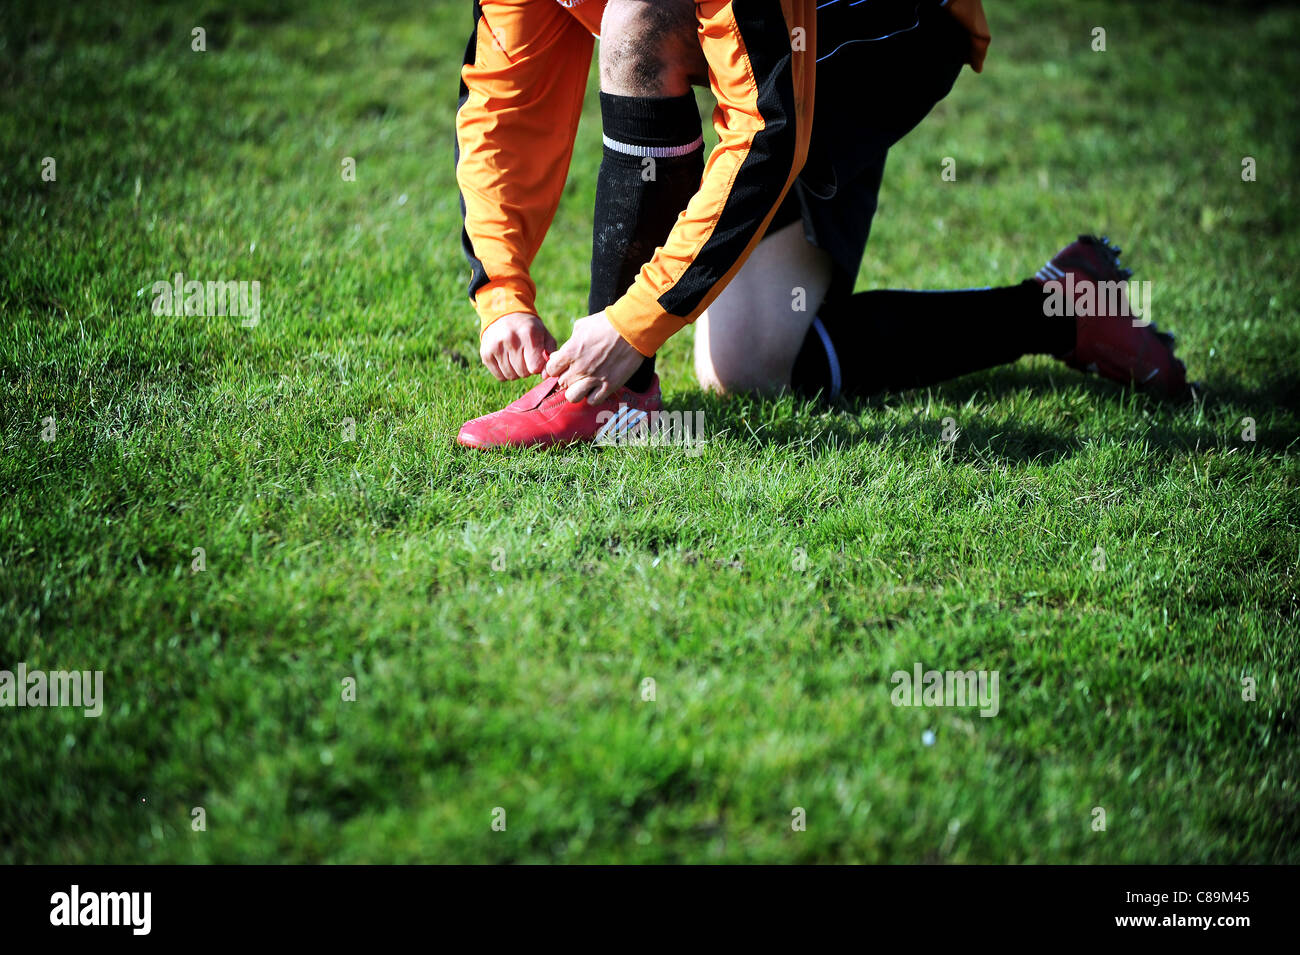 Amateur football match at Outwood Road fields, Radcliffe, Greater Manchester, England. Picture by Paul Heyes, October - Stock Image